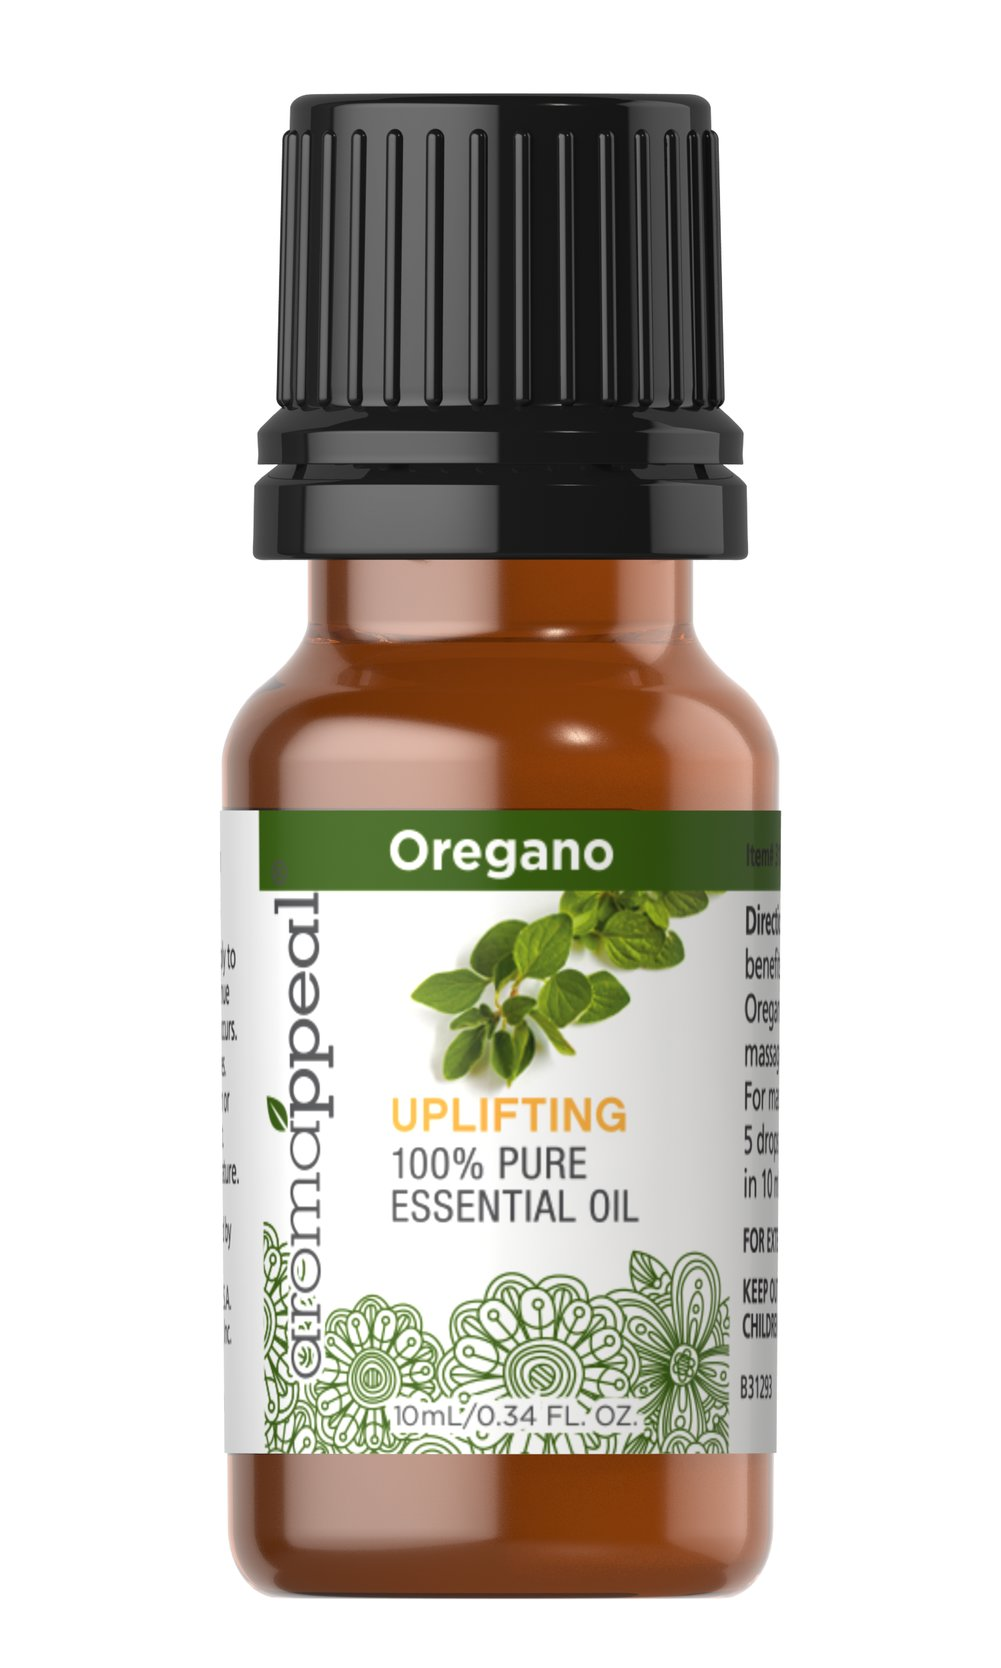 Oregano 100% Pure Essential Oil